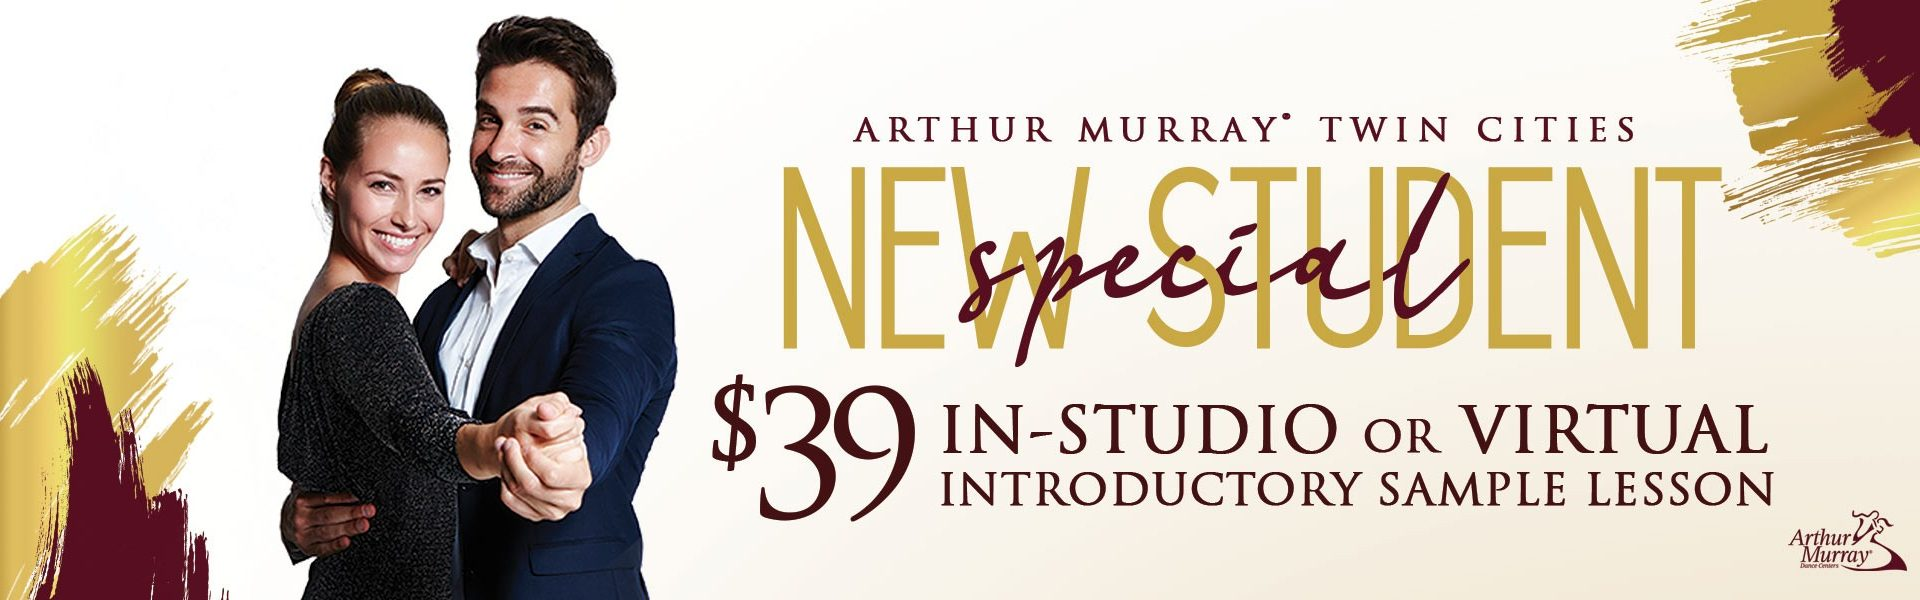 Arthur Murray Twin Cities New Student Special